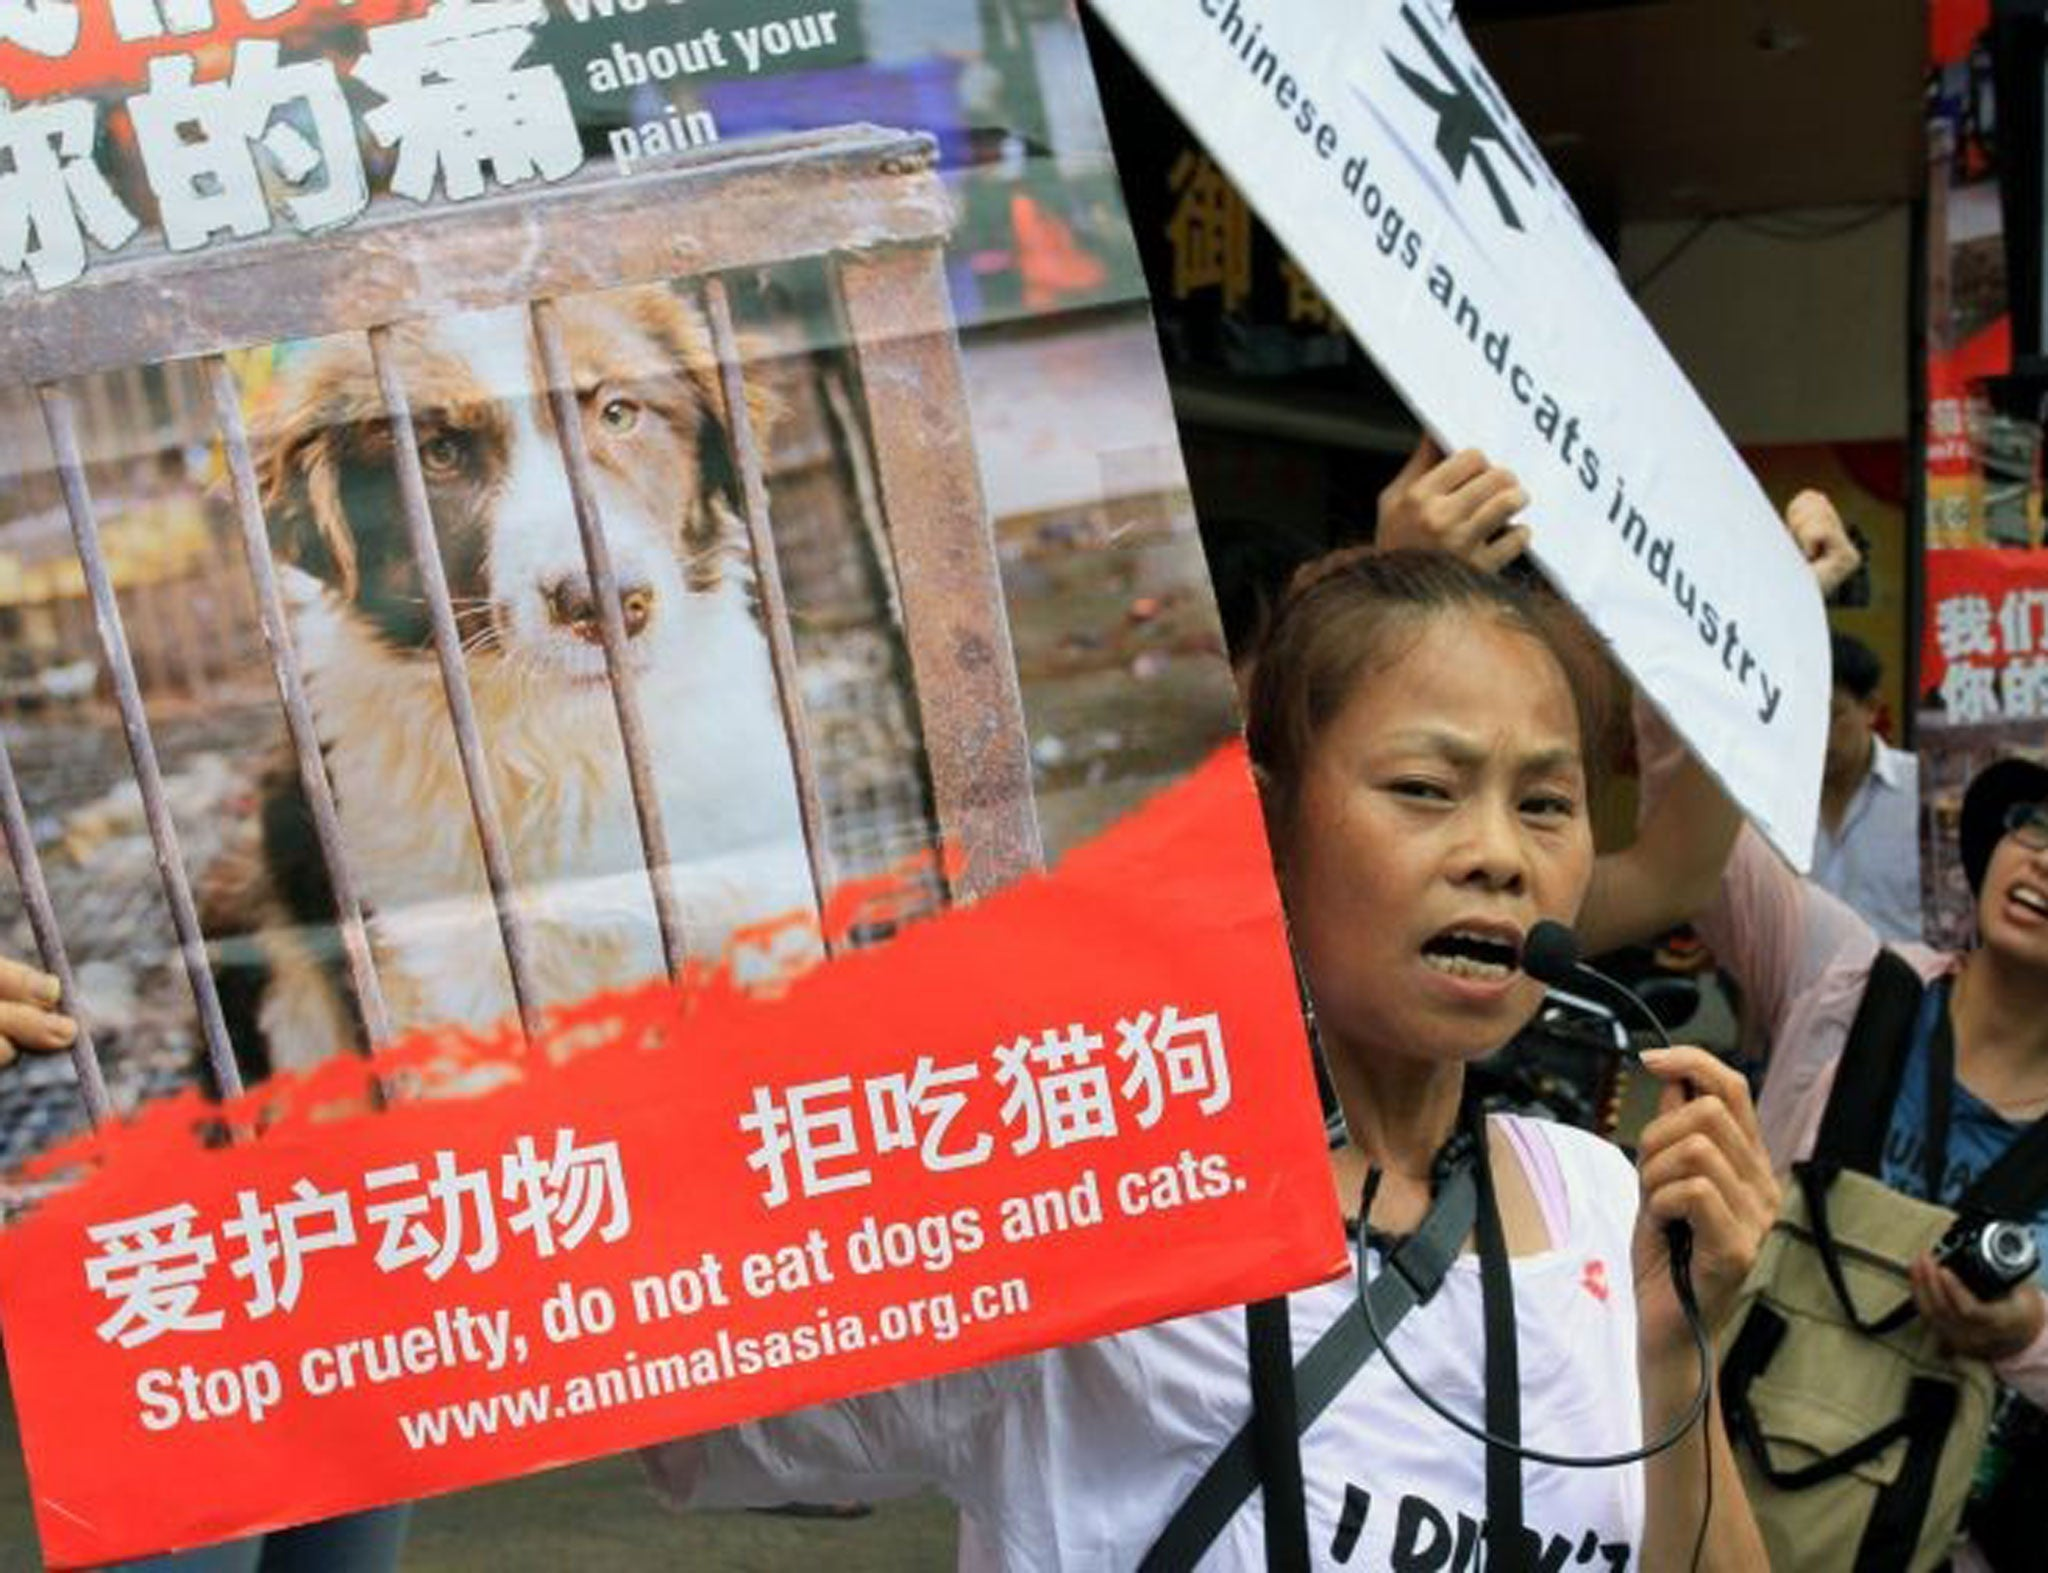 a recount of two animal rights activists protests